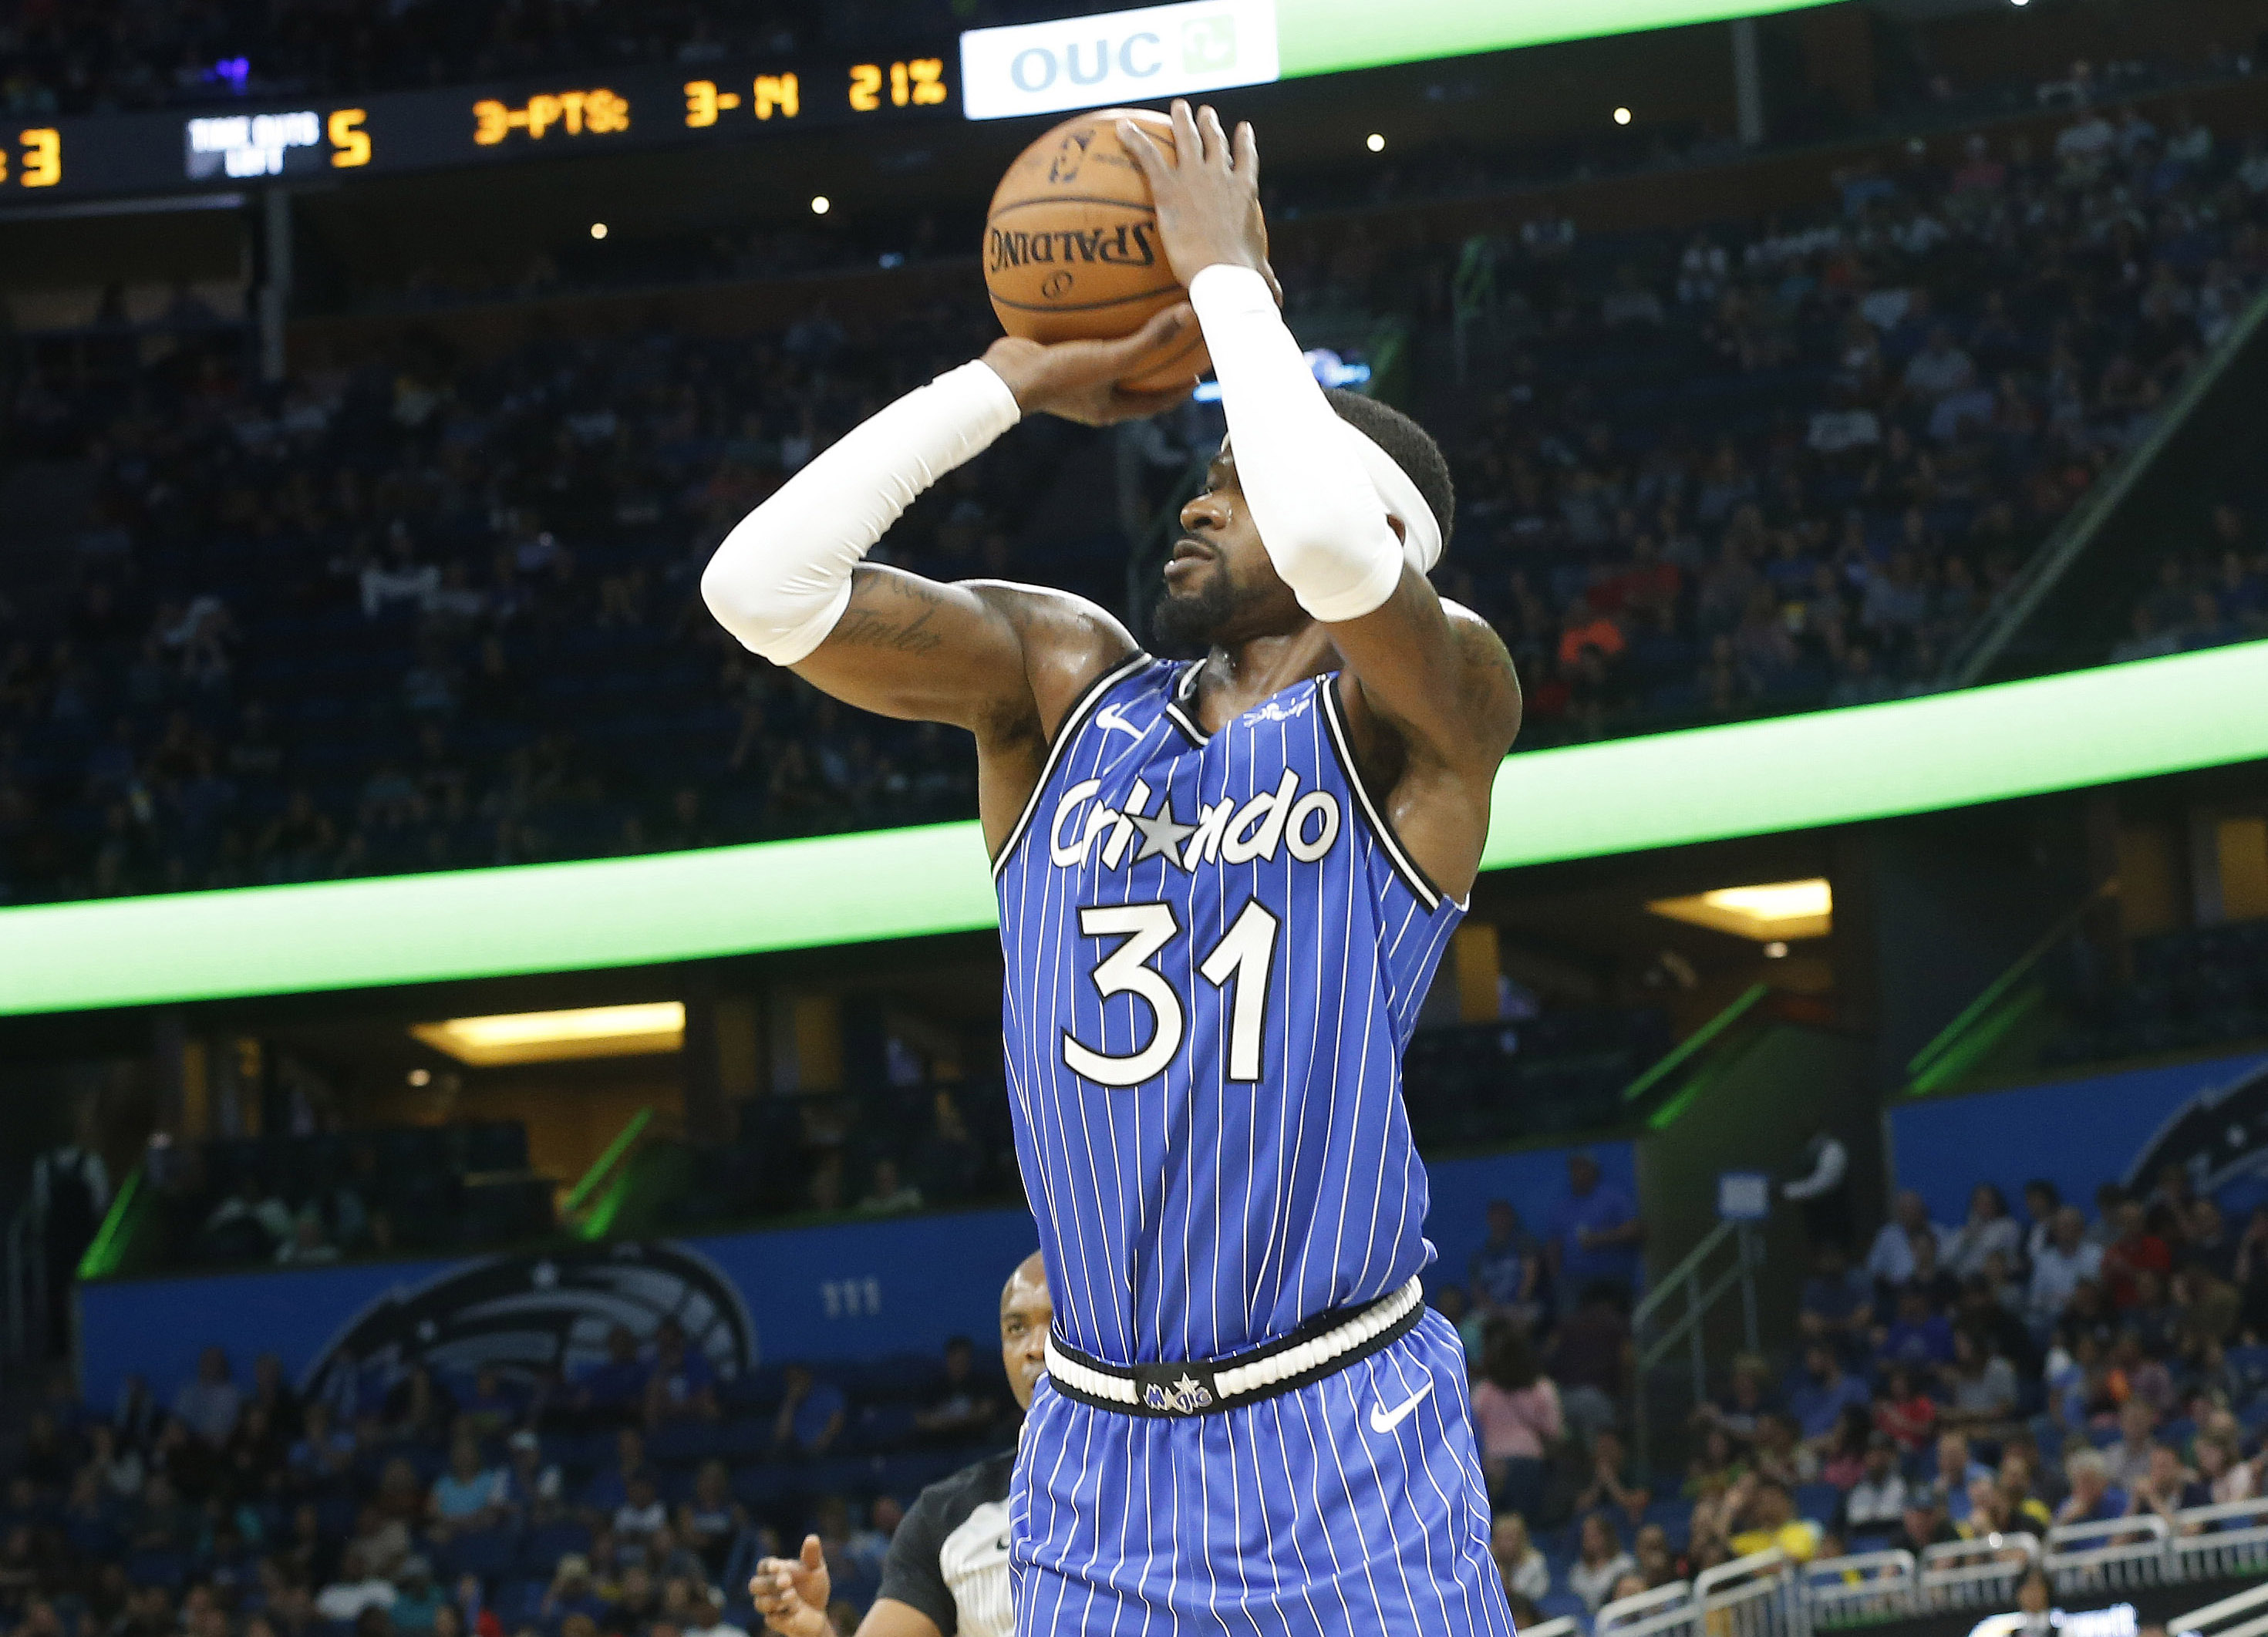 NBA: Cleveland Cavaliers at Orlando Magic